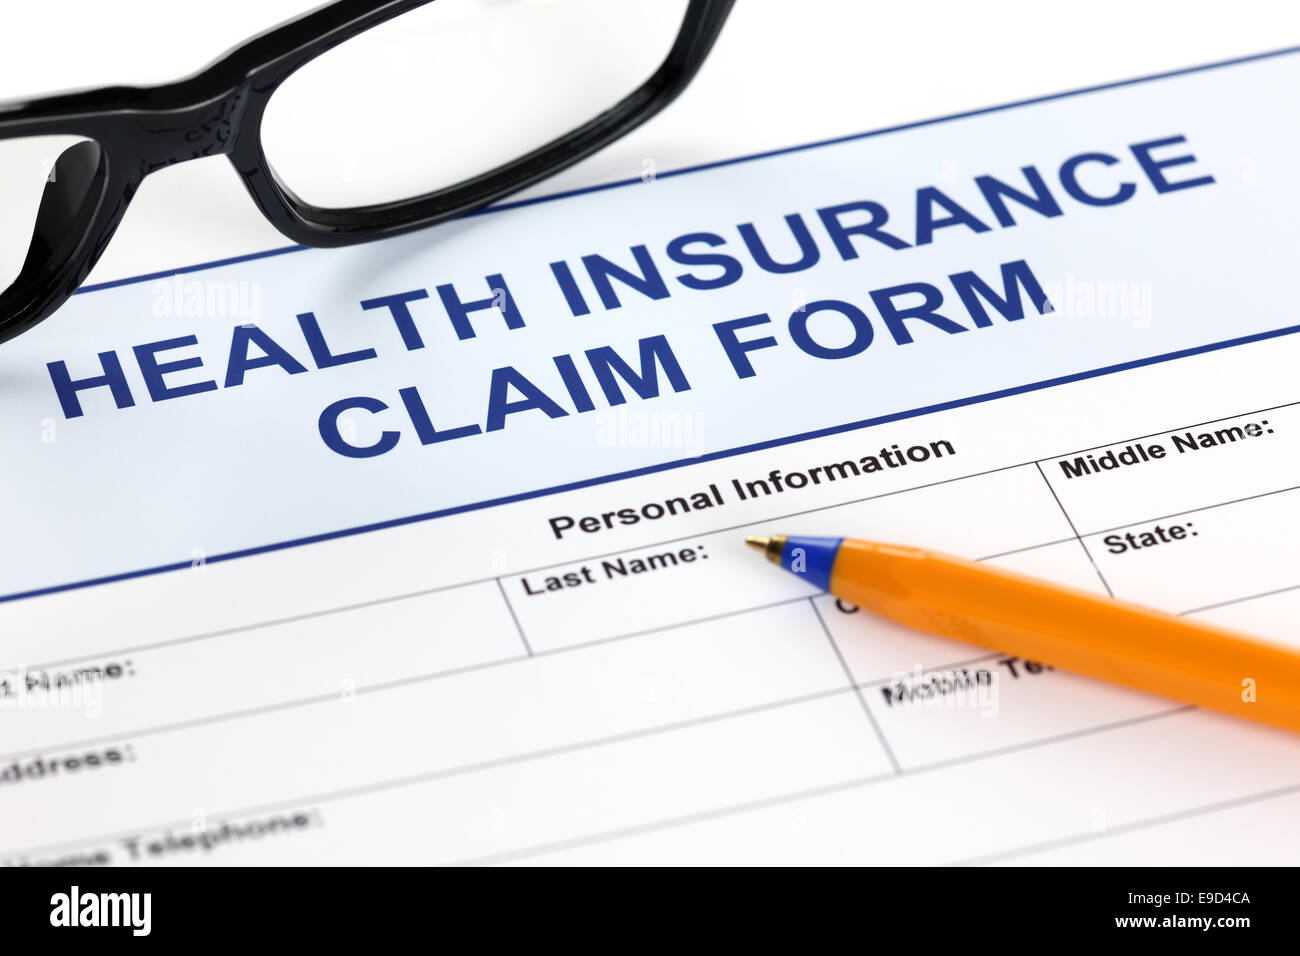 Health insurance claim form with glasses and ballpoint pen. - Stock Image